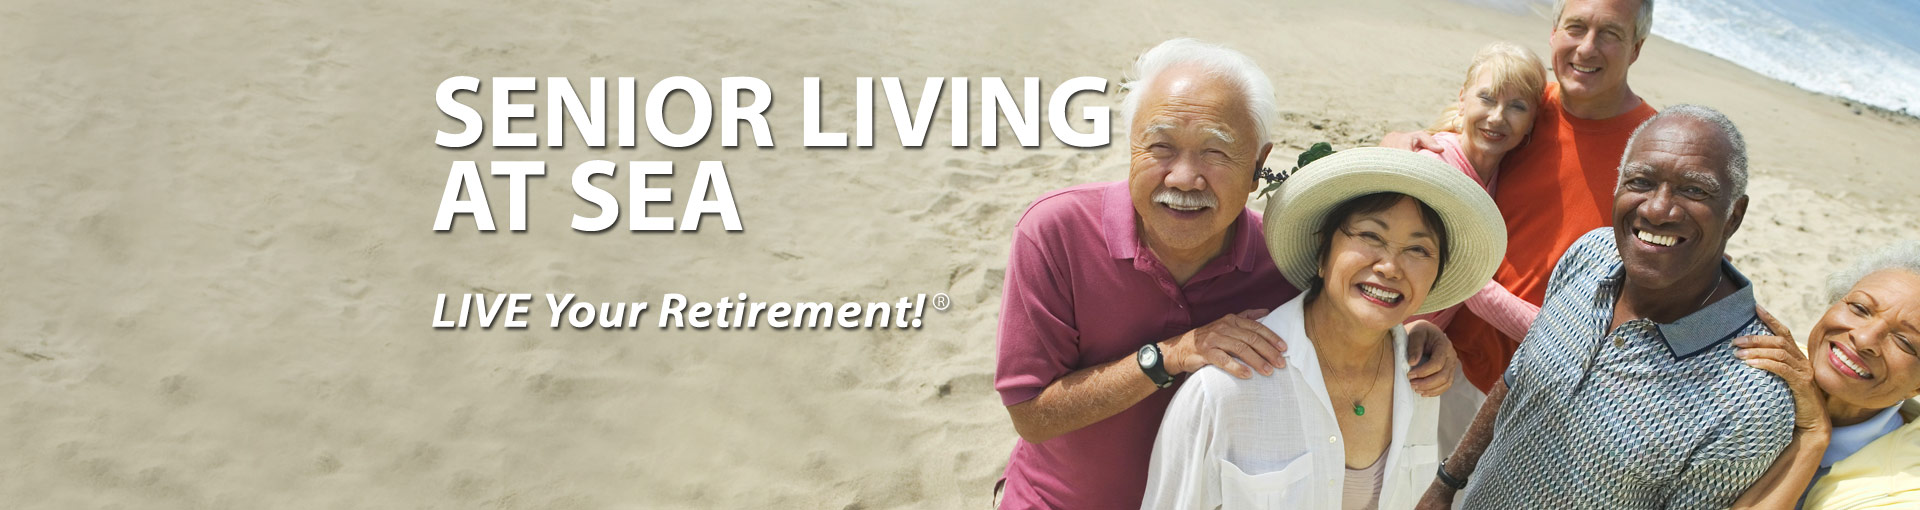 Senior Living at Sea - Retired friends